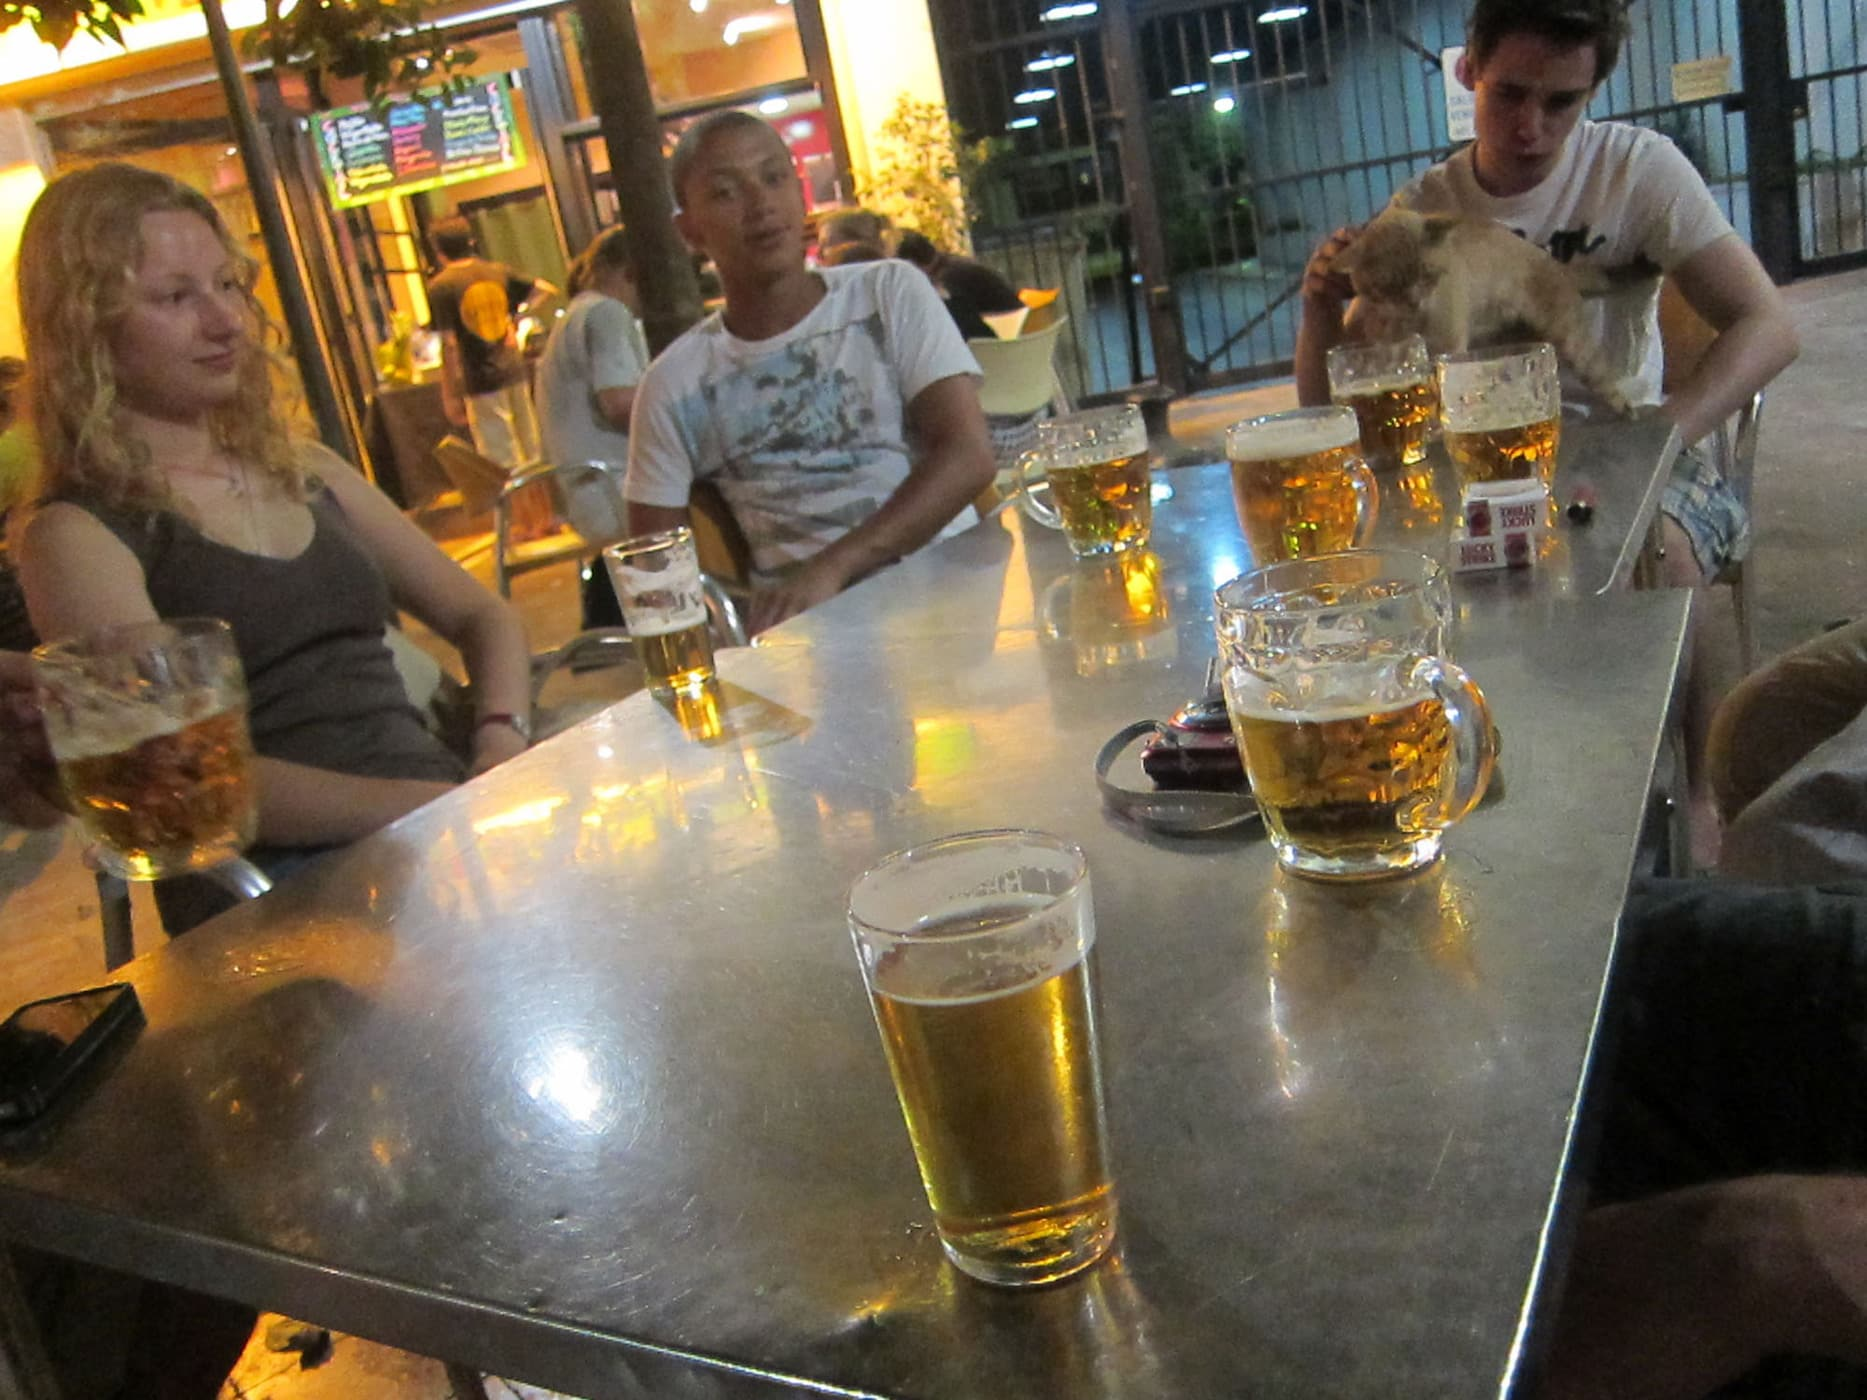 Getting beers in Sevilla, Spain